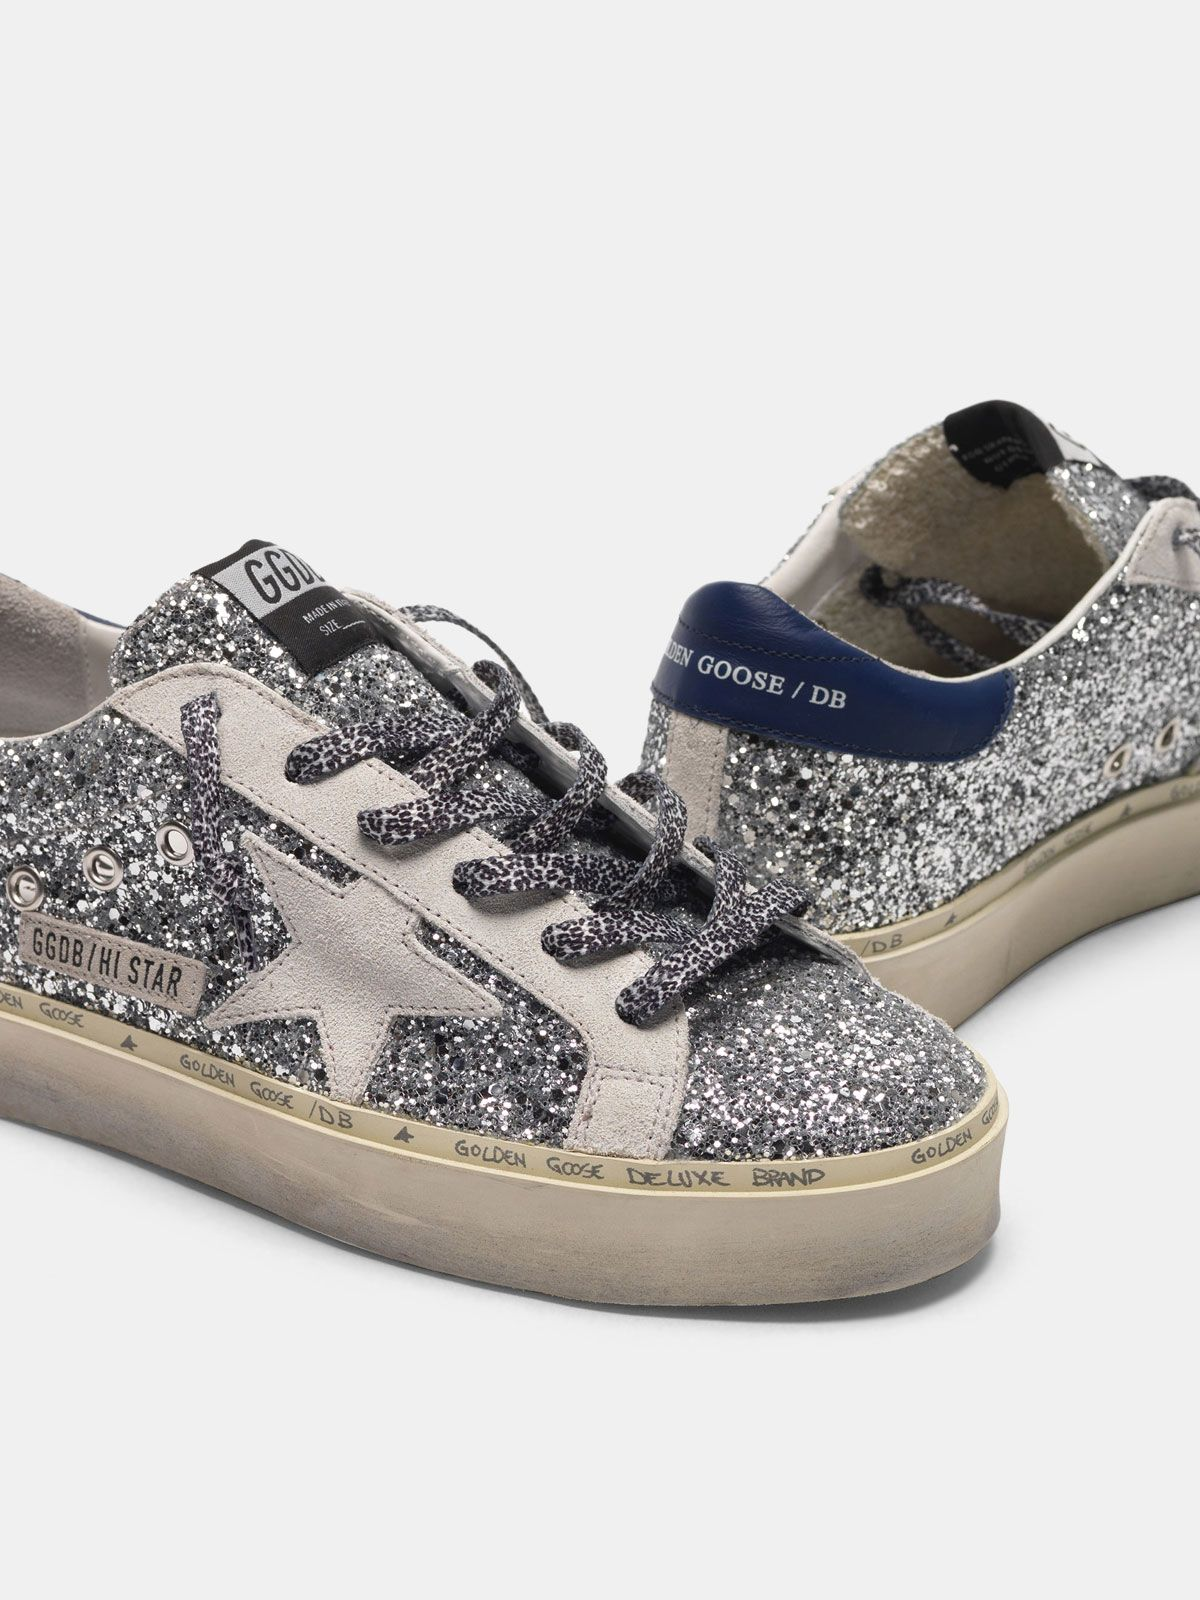 Golden Goose - Hi Star sneakers with glitter, white star and leopard print laces in